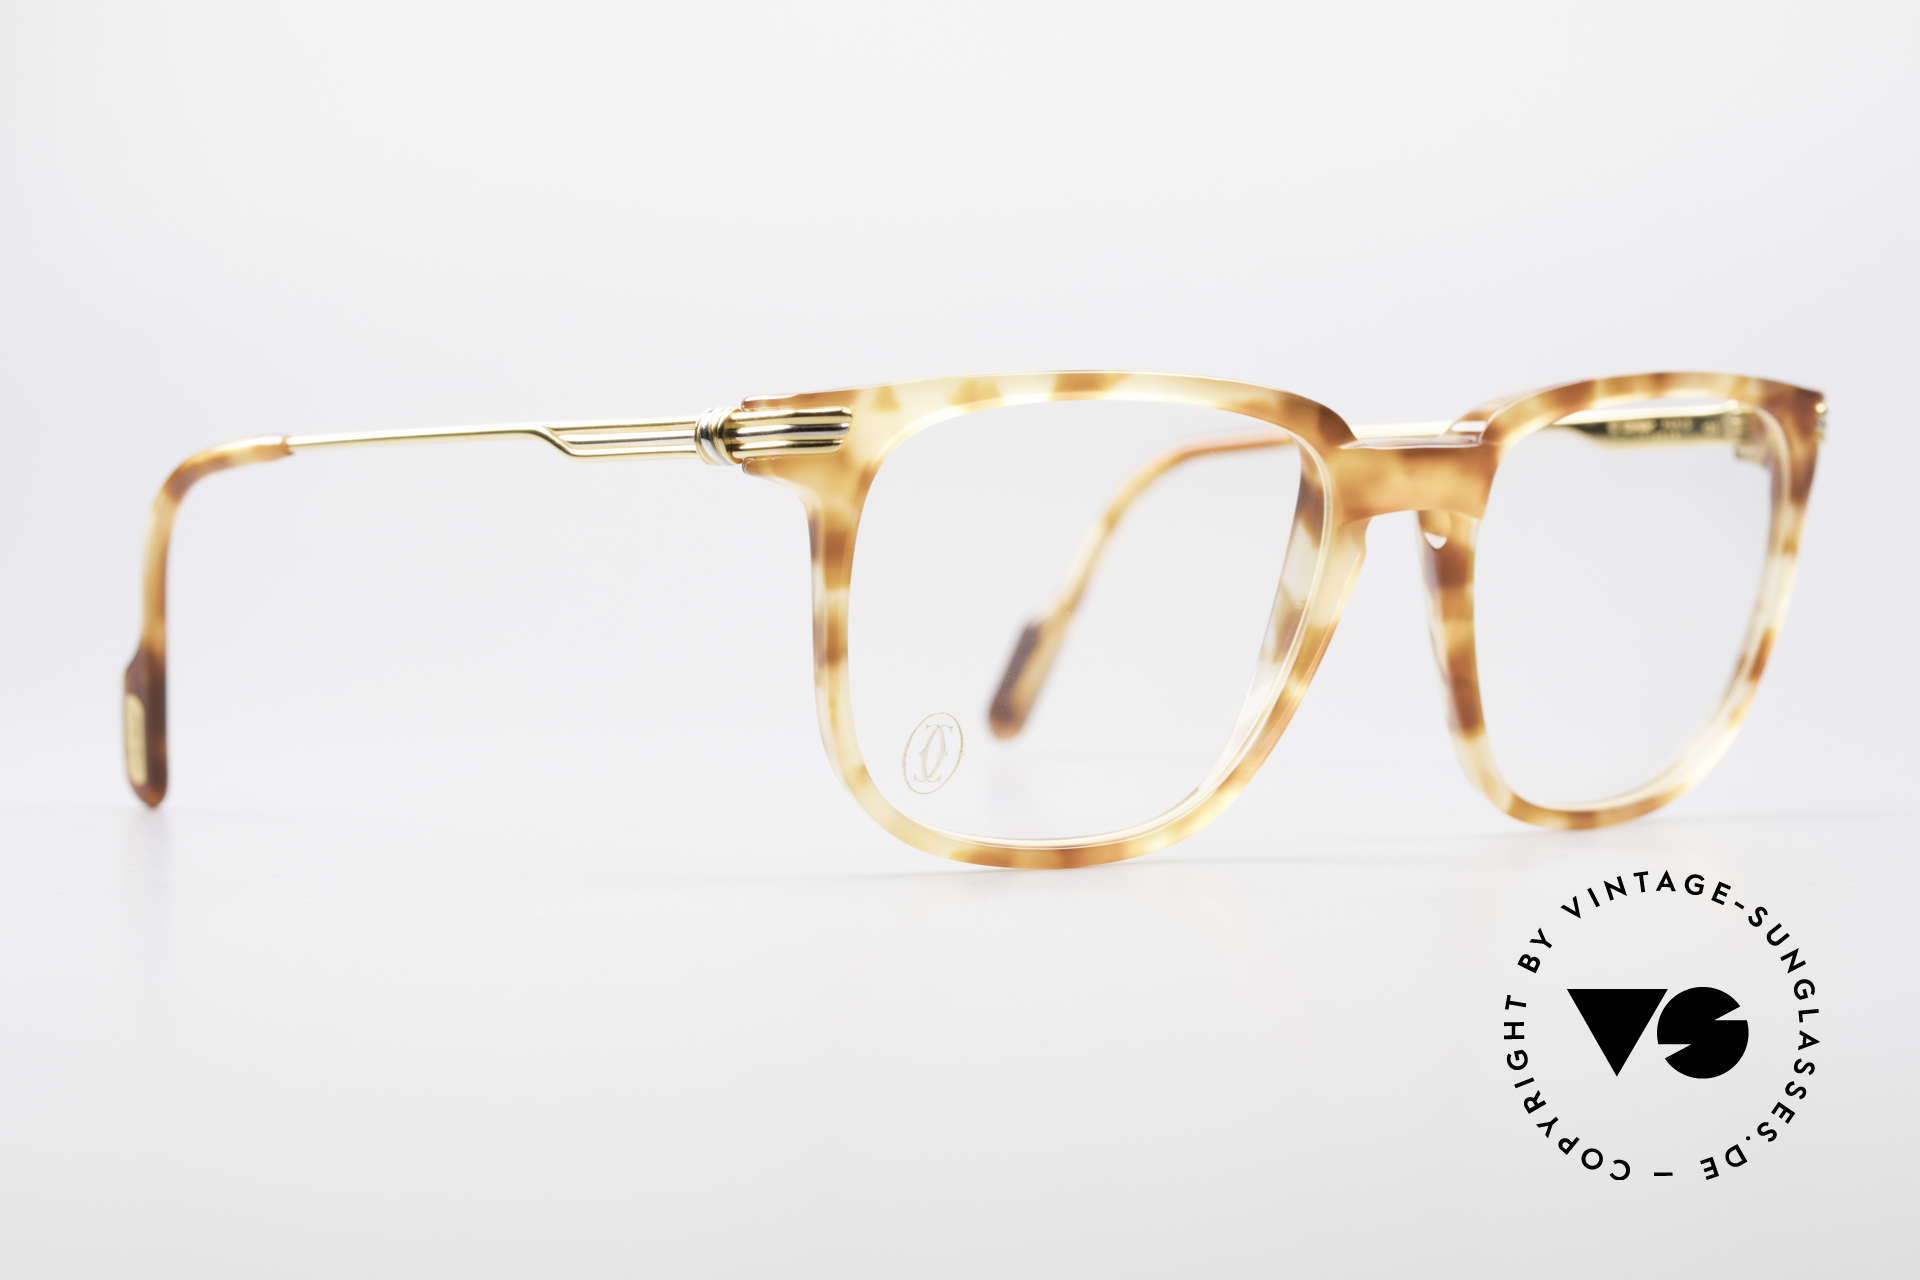 Cartier Reflet 90's Luxury Eyeglass-Frame, noble coloring in 'Tigré roux' (Tiger red) and 22ct GP, Made for Men and Women